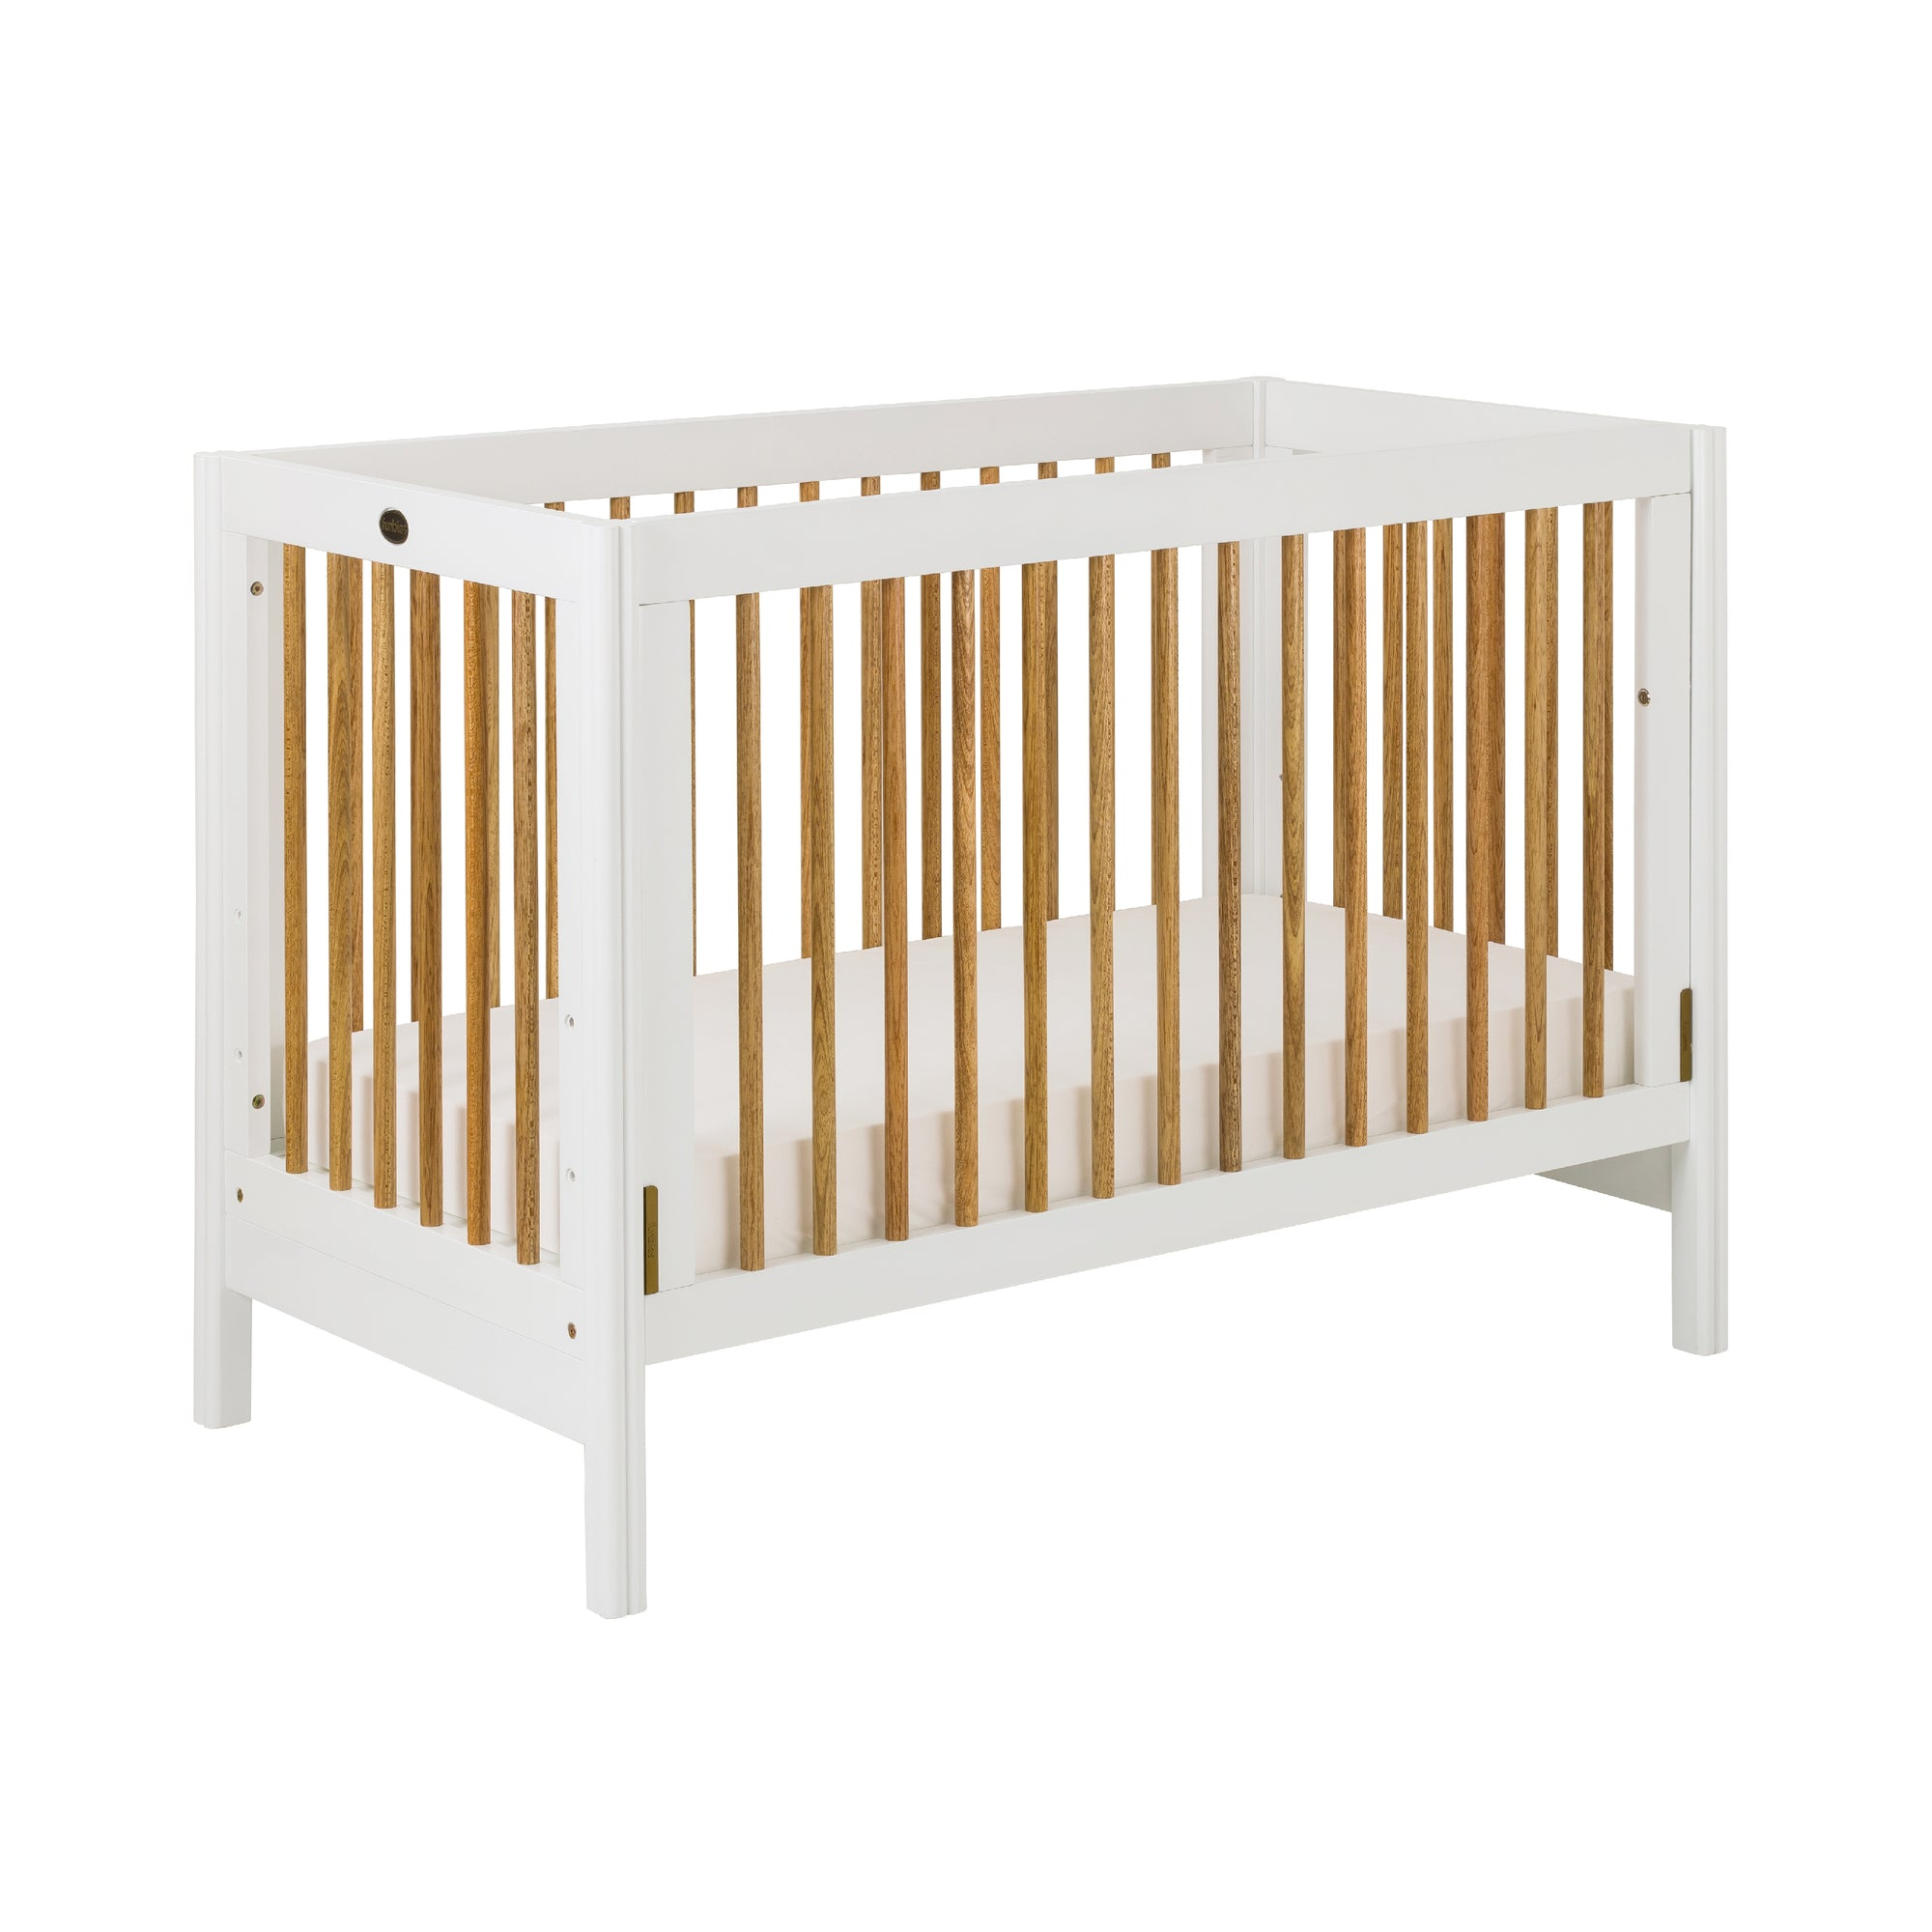 Clover Convertible Baby Cot (120x60cm) Col: White